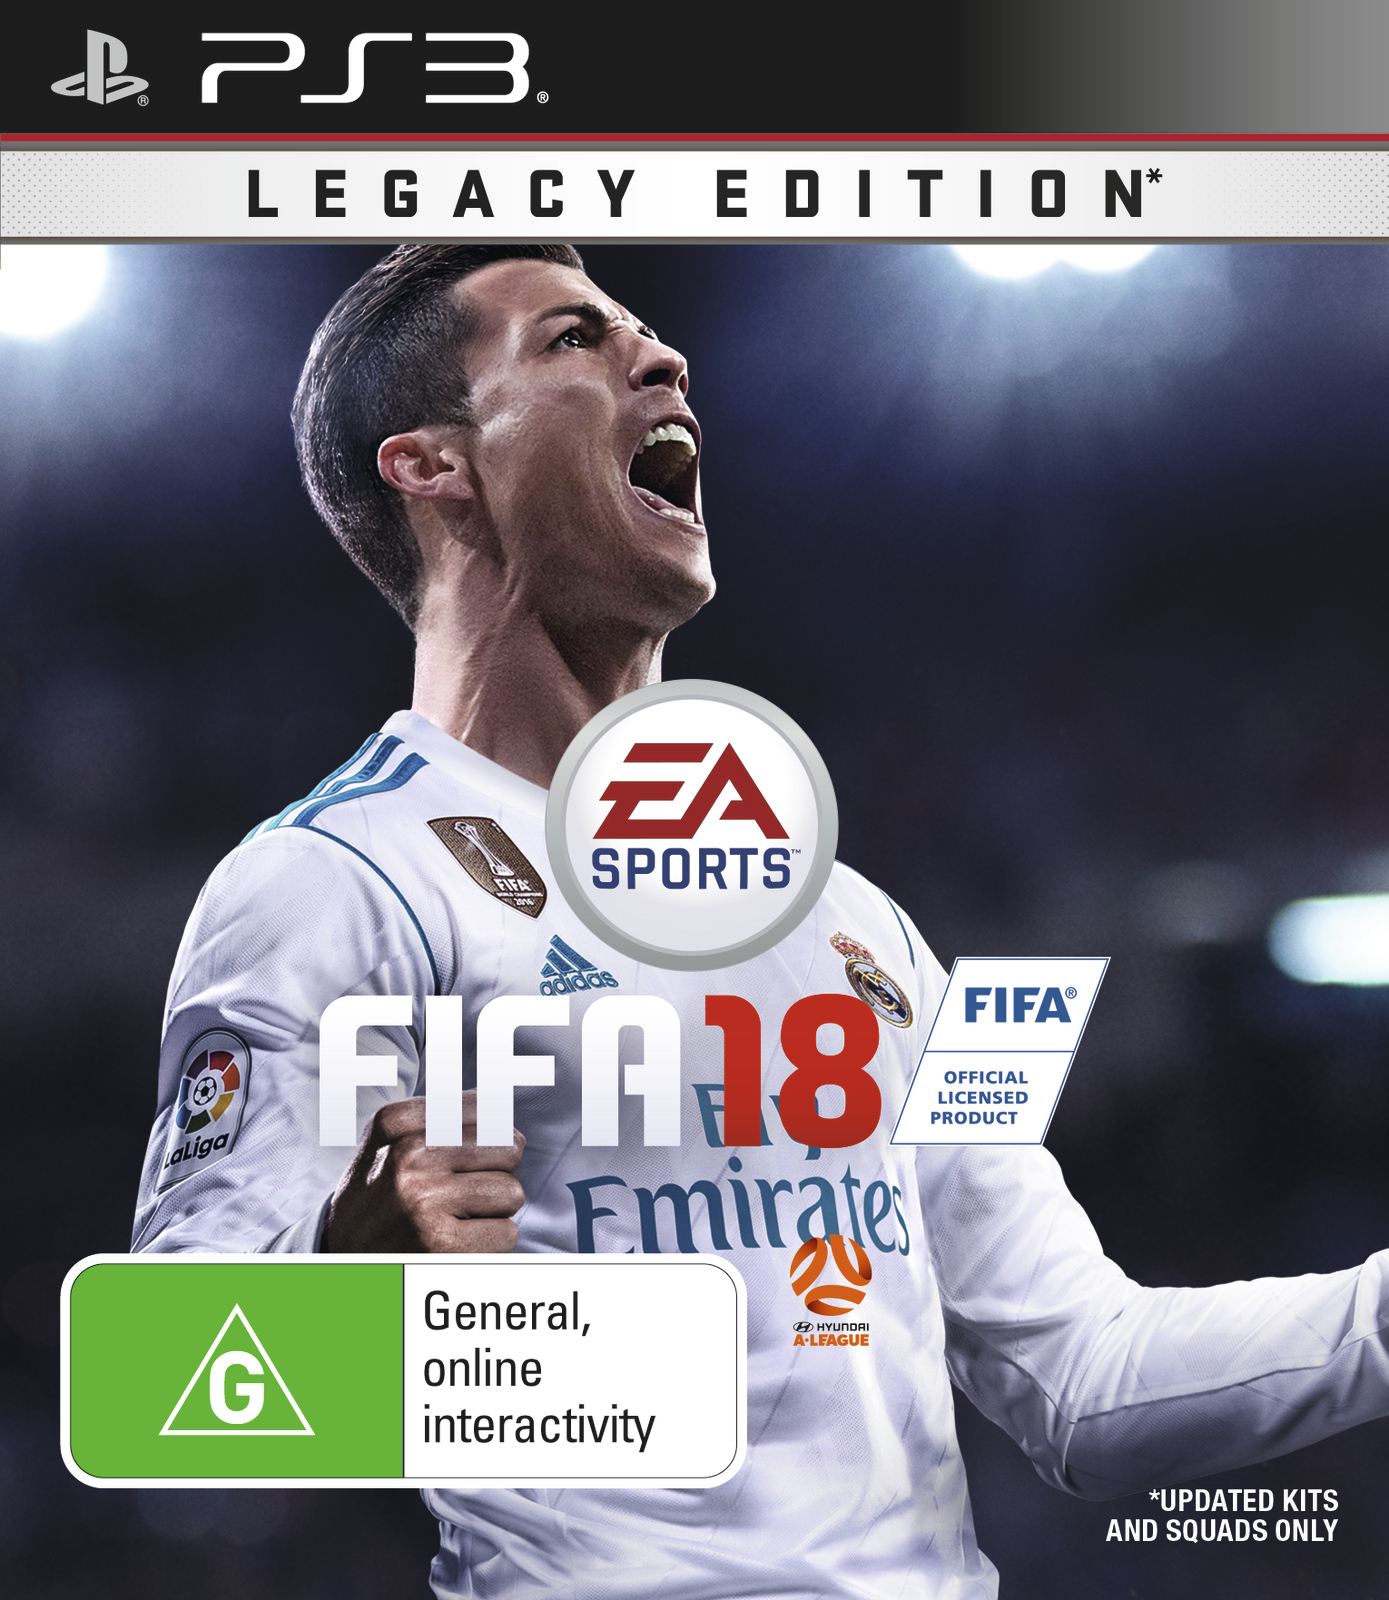 FIFA 18 Legacy Edition for PS3 image